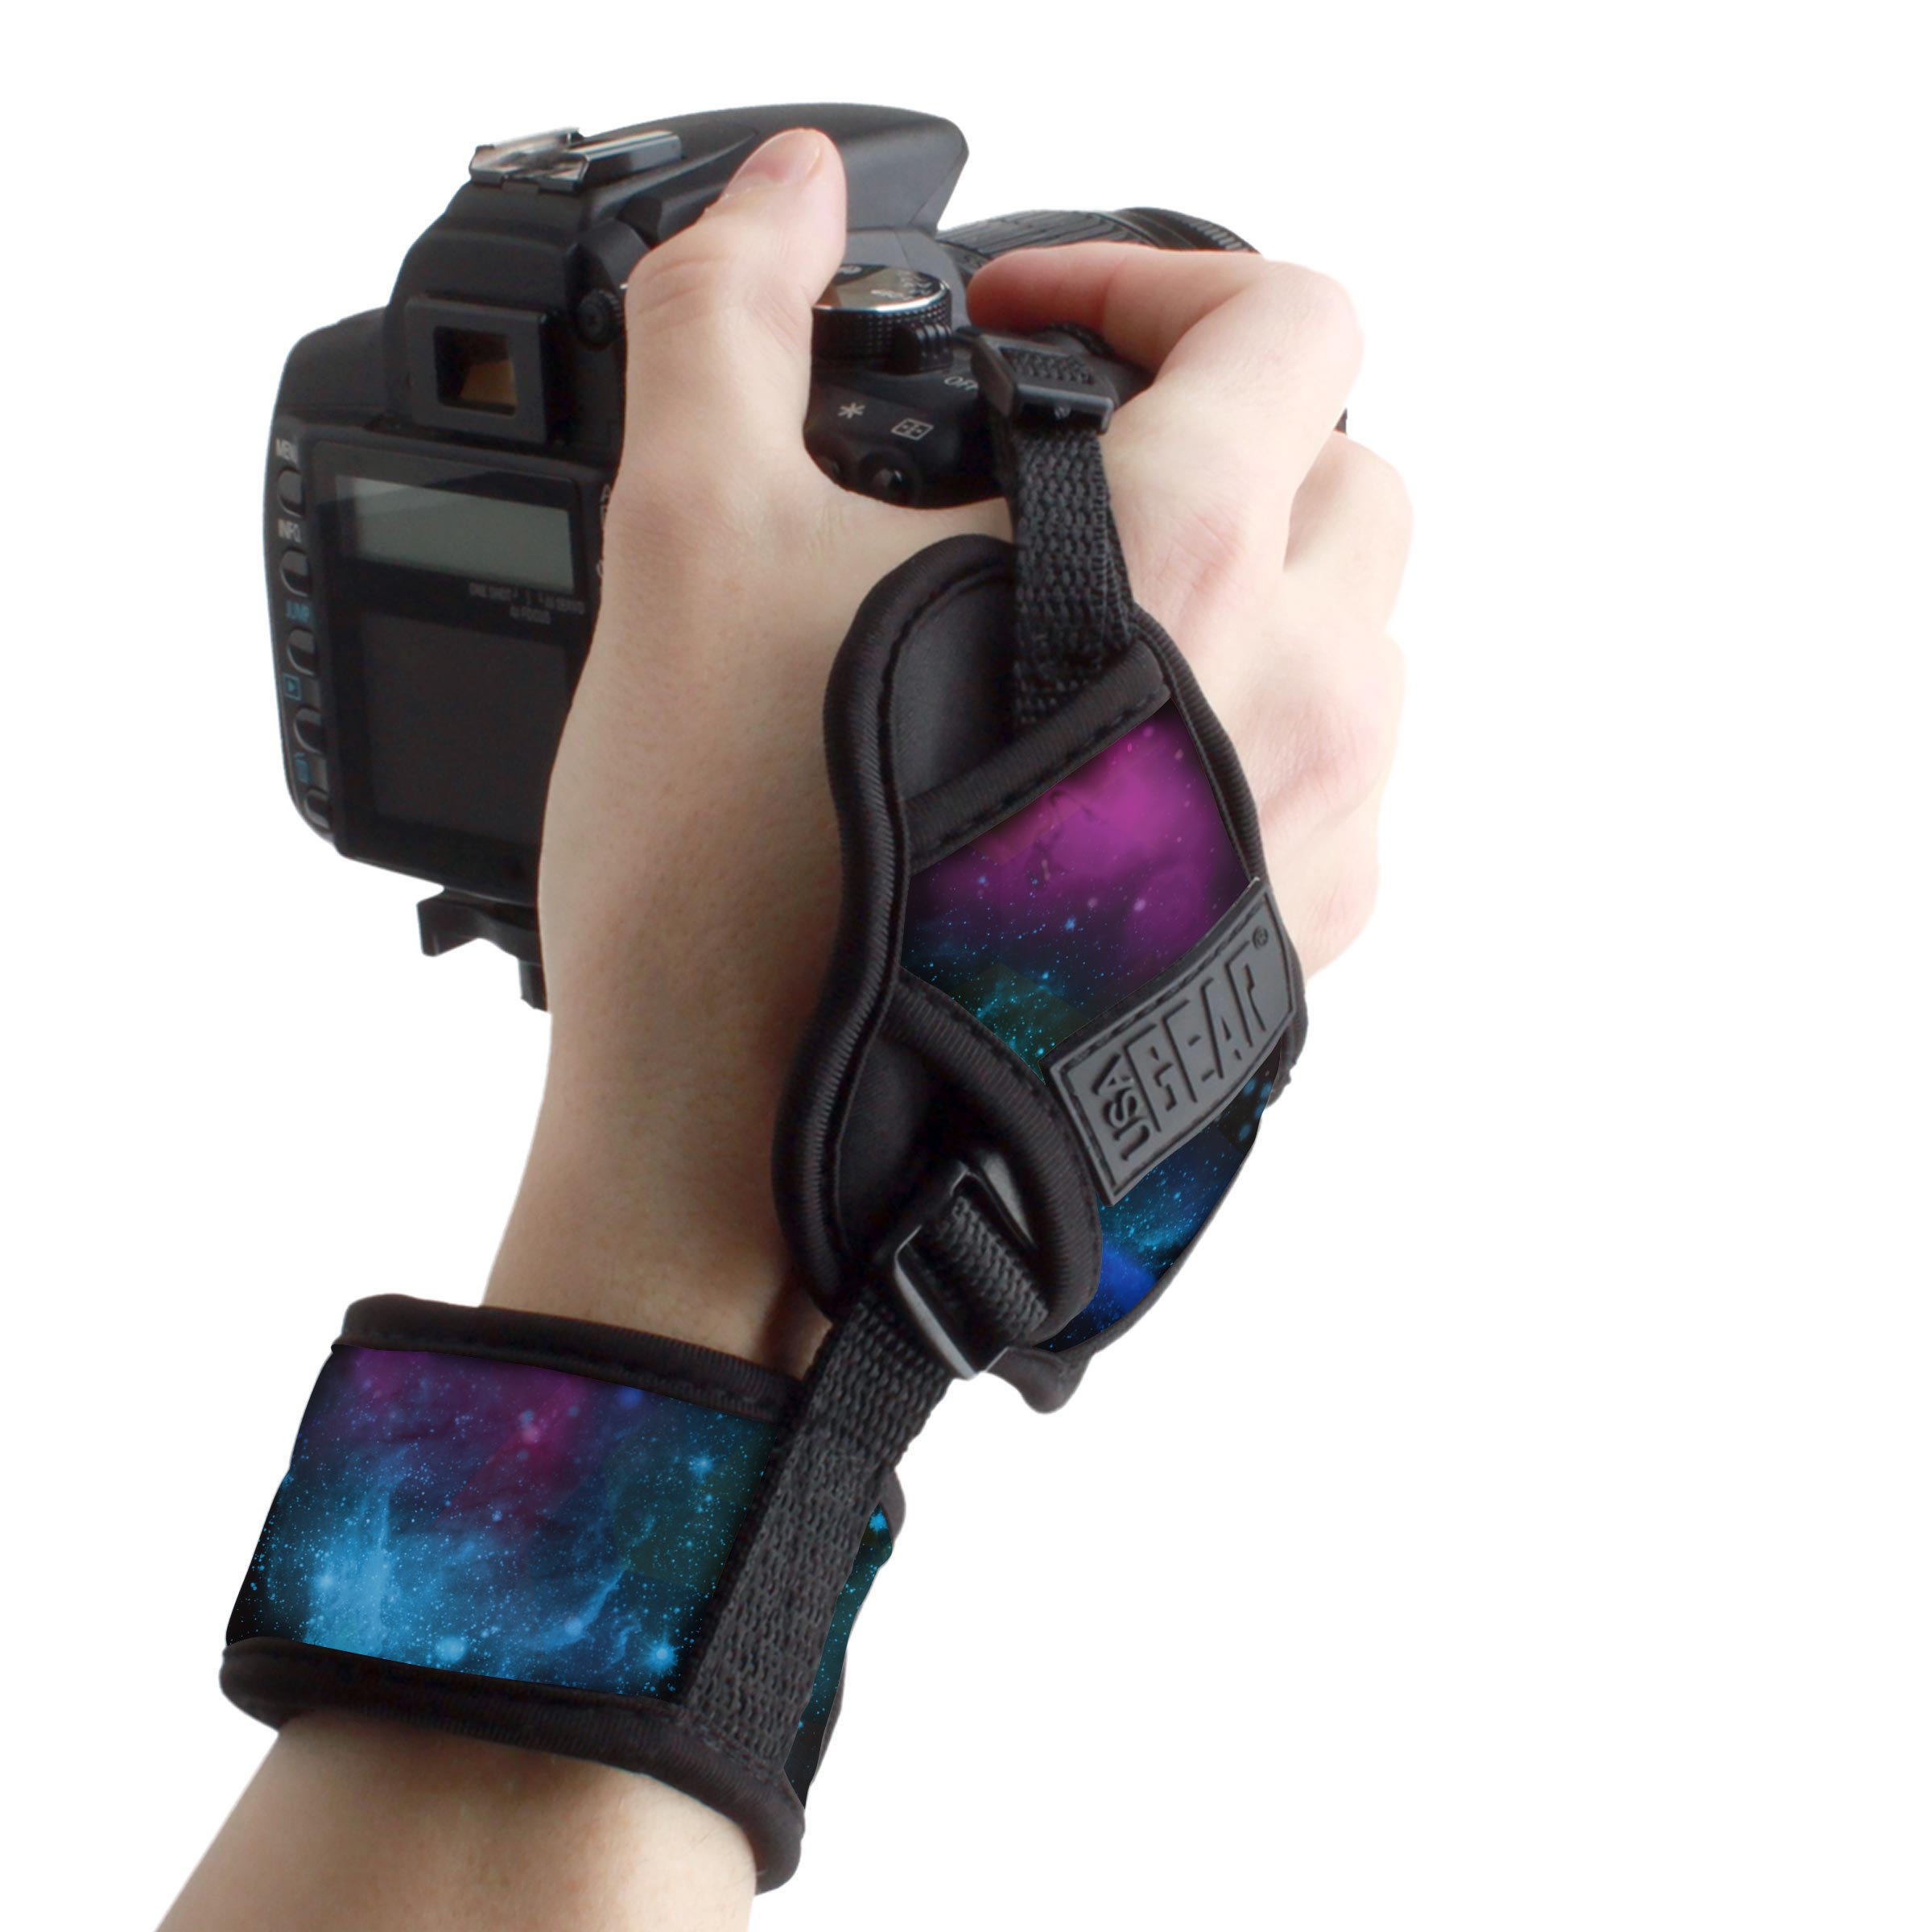 Professional Camera Grip Hand Strap with Galaxy Padded Neoprene Design and Metal Plate by USA Gear - Works with Canon, Fujifilm, Nikon, Sony and More DSLR, Mirrorless, Point & Shoot Cameras